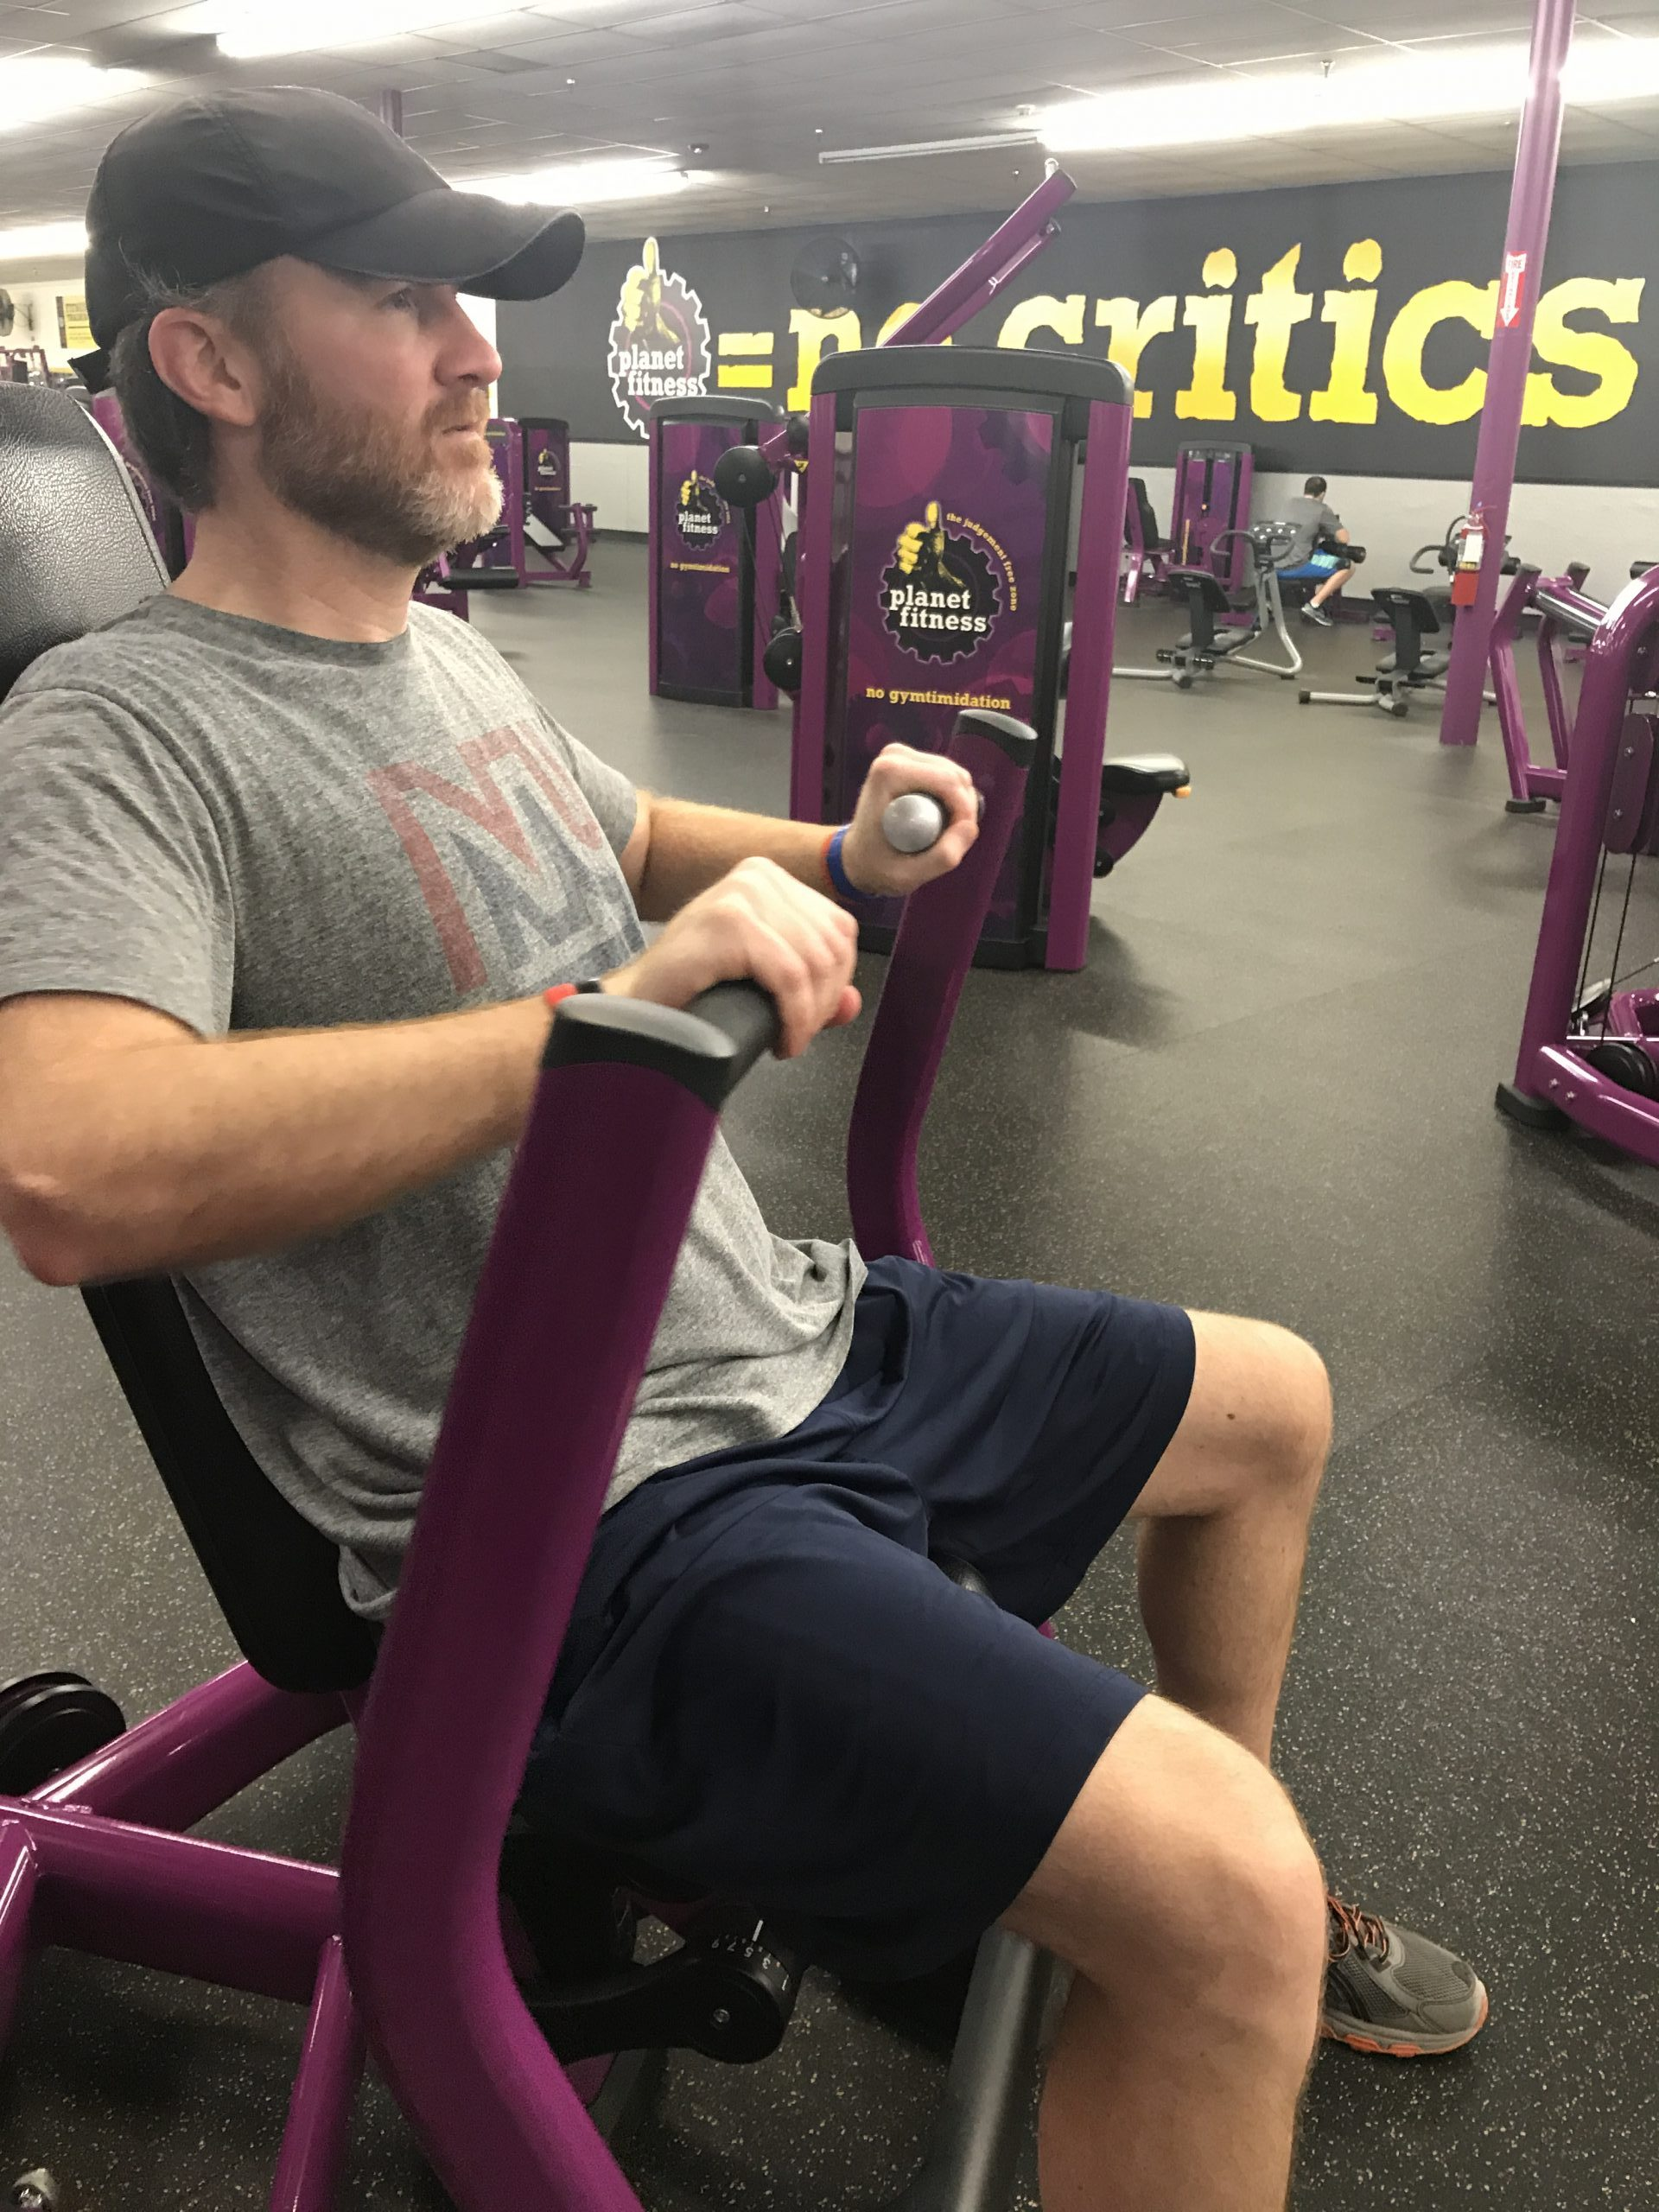 Planet Fitness Bench Press : planet, fitness, bench, press, Welcome, TheDavidGardner.com, Minute, Health